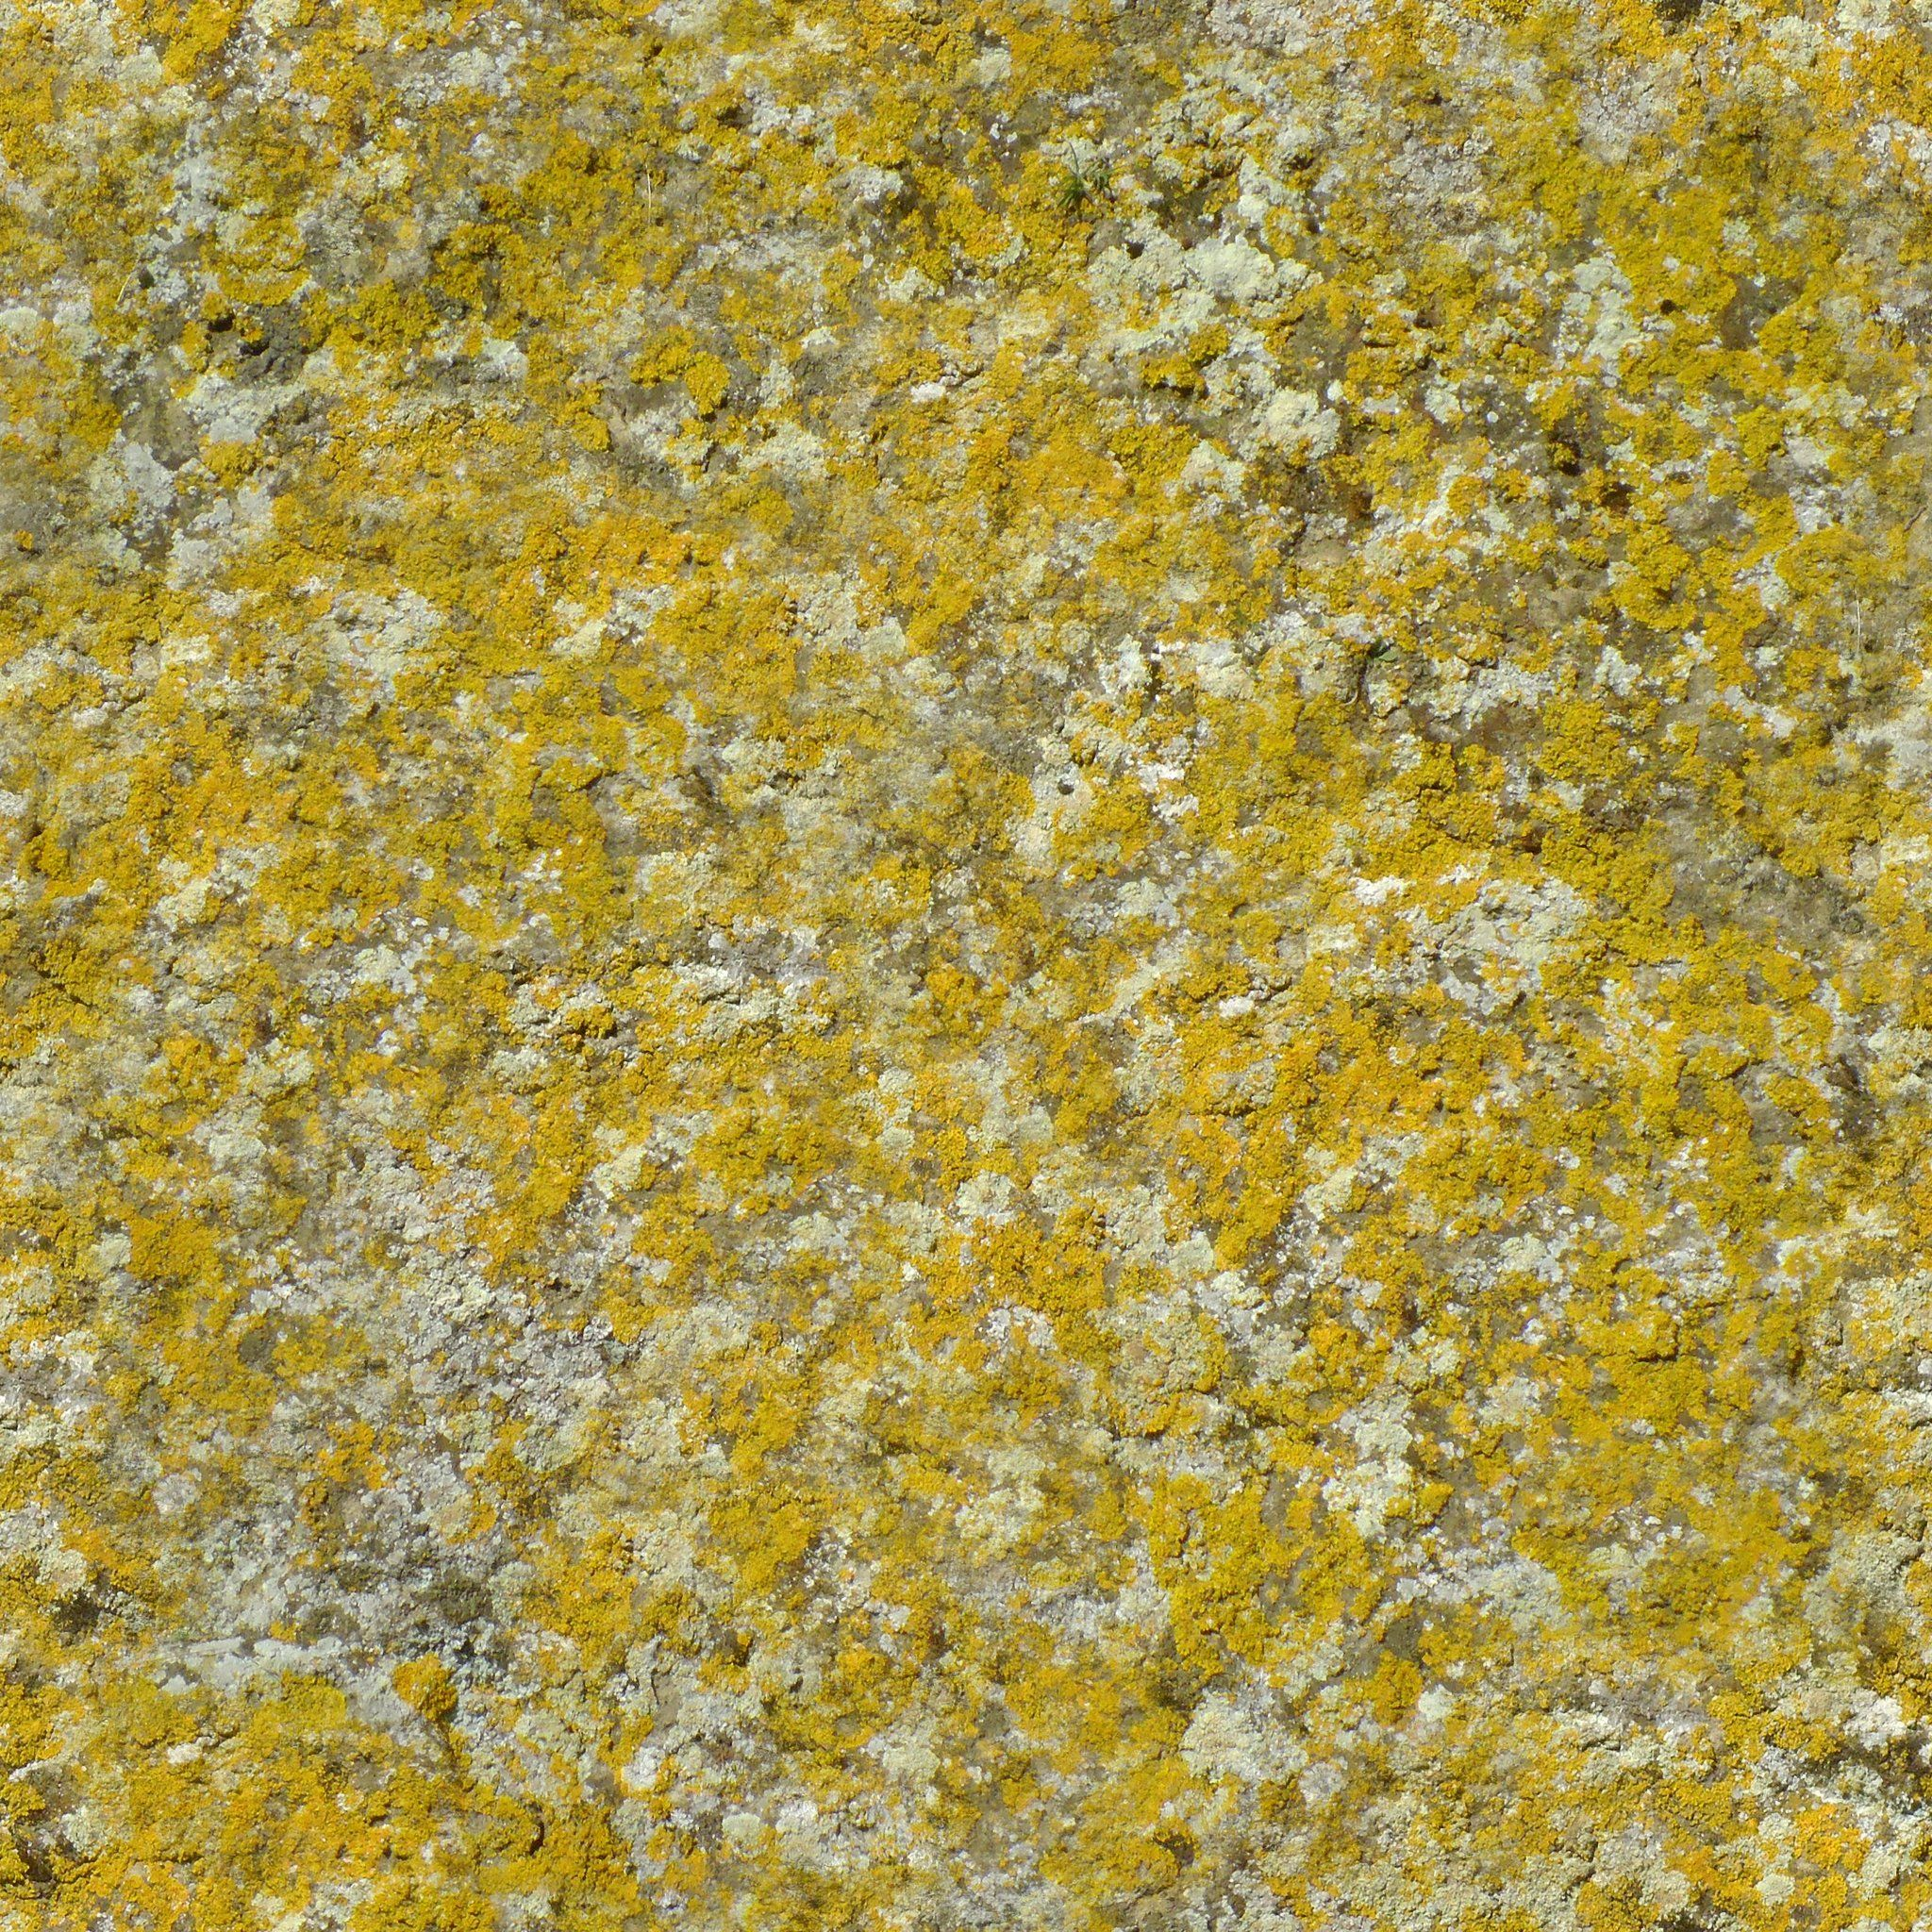 Zero Cc Tileable Moss Or Lichen Covered Stone Texture Edited From Pixabay Cc0 Stone Texture Seamless Textures How To Dry Basil